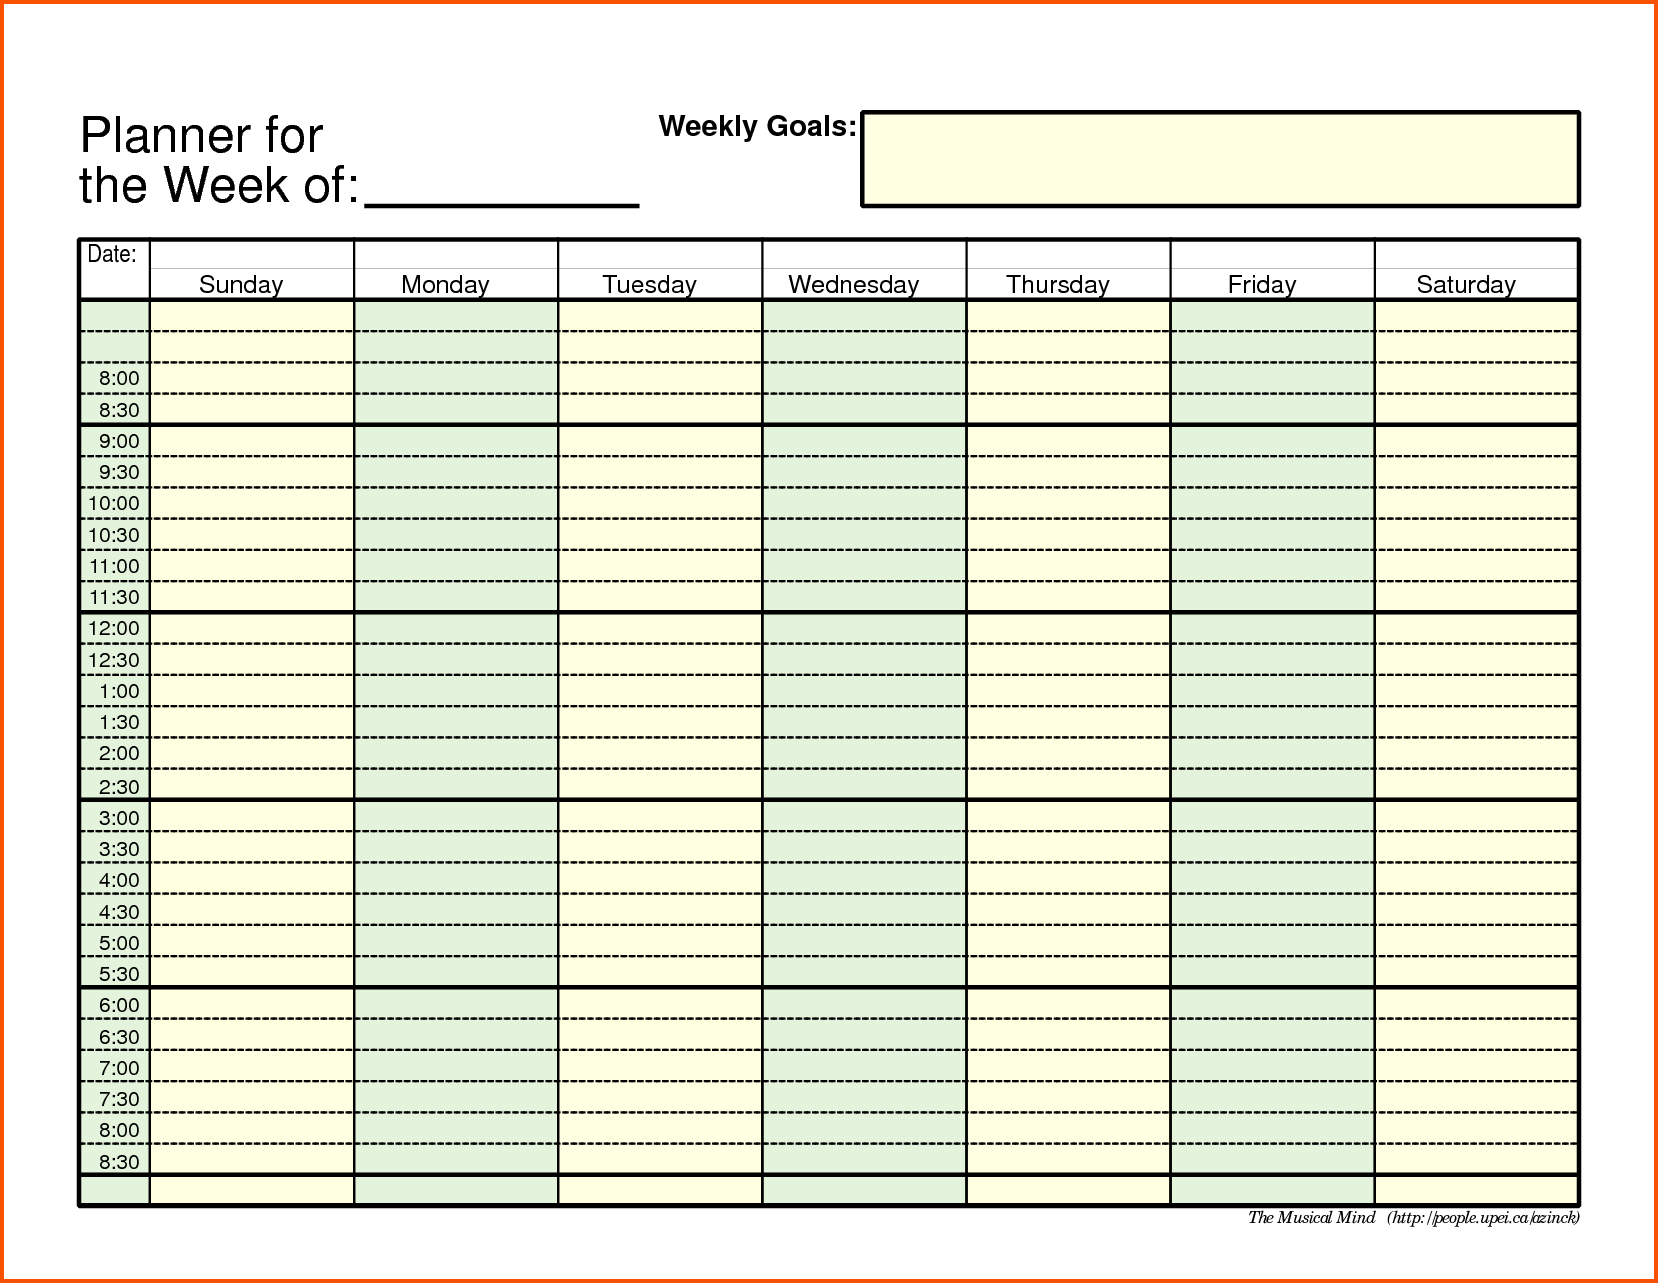 Weekly Schedule Template Ideas Calendar With Time Slots Free Smorad inside Weekly Schedule With Blank Time Slots